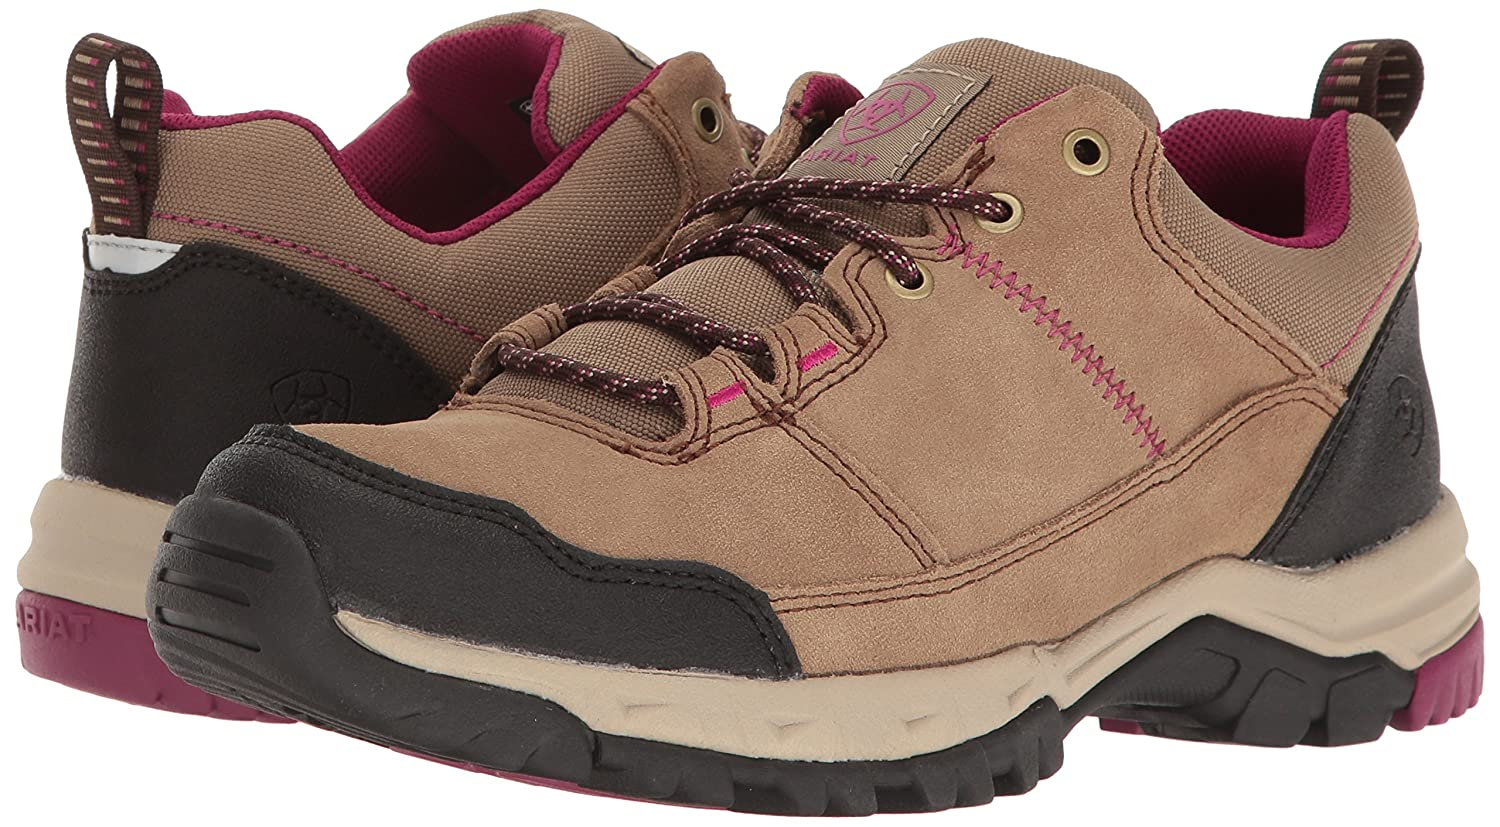 010bbb1cc0d ARIAT Womens Skyline Lo Lace Hiking Shoe